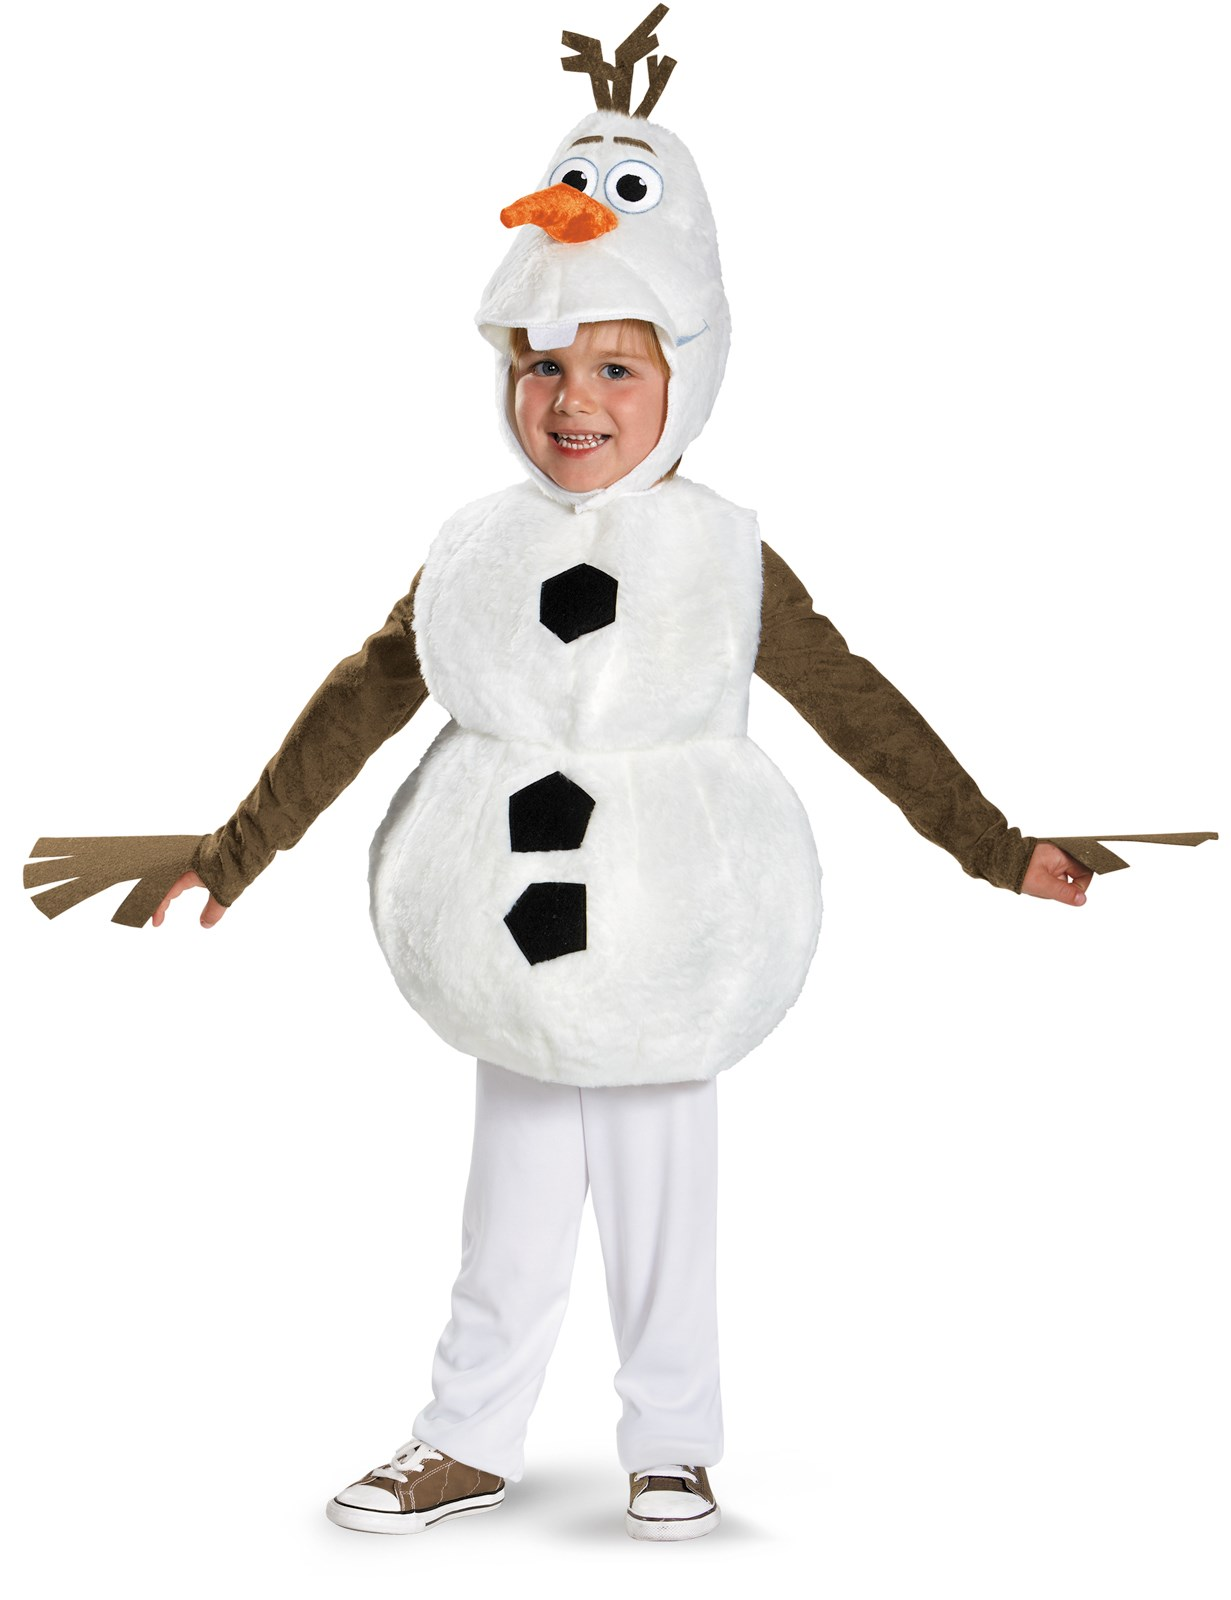 Frozen - Olaf Deluxe Baby / Toddler Costume 3T-4T